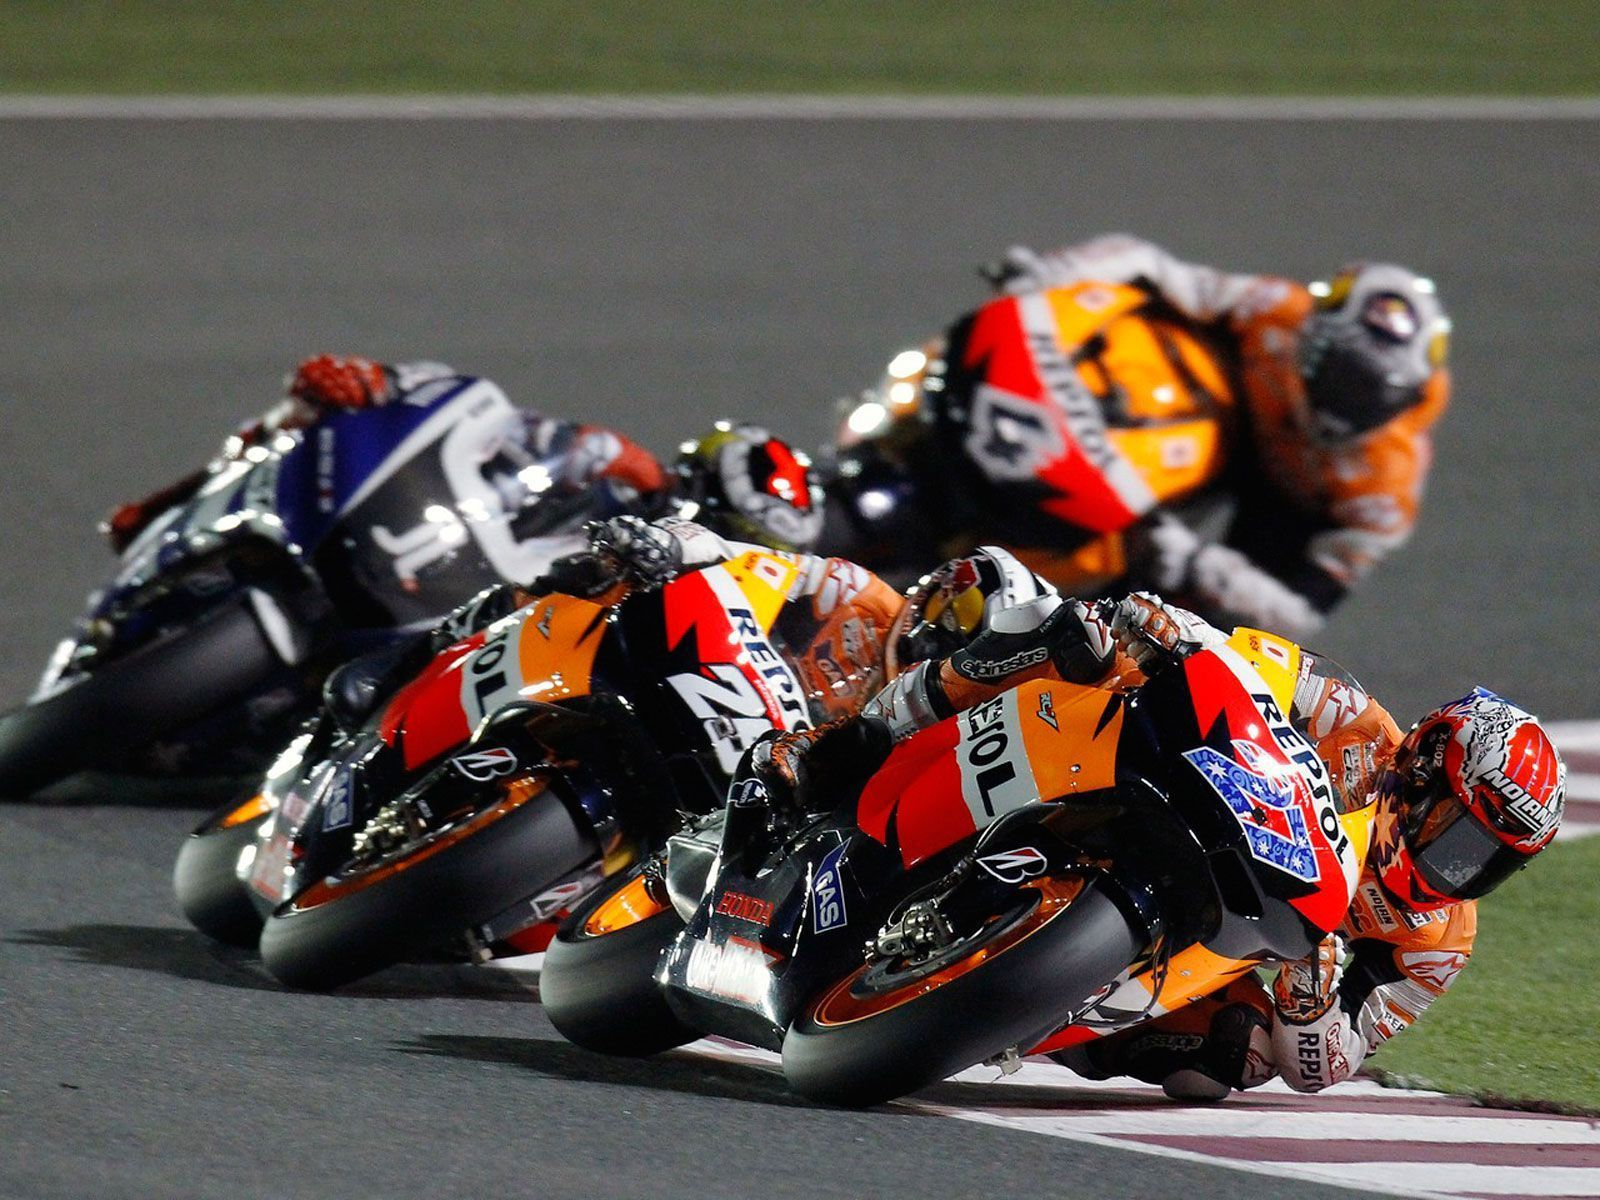 MotoGP Wallpaper x HD Wallpapers Pinterest Motogp Hd